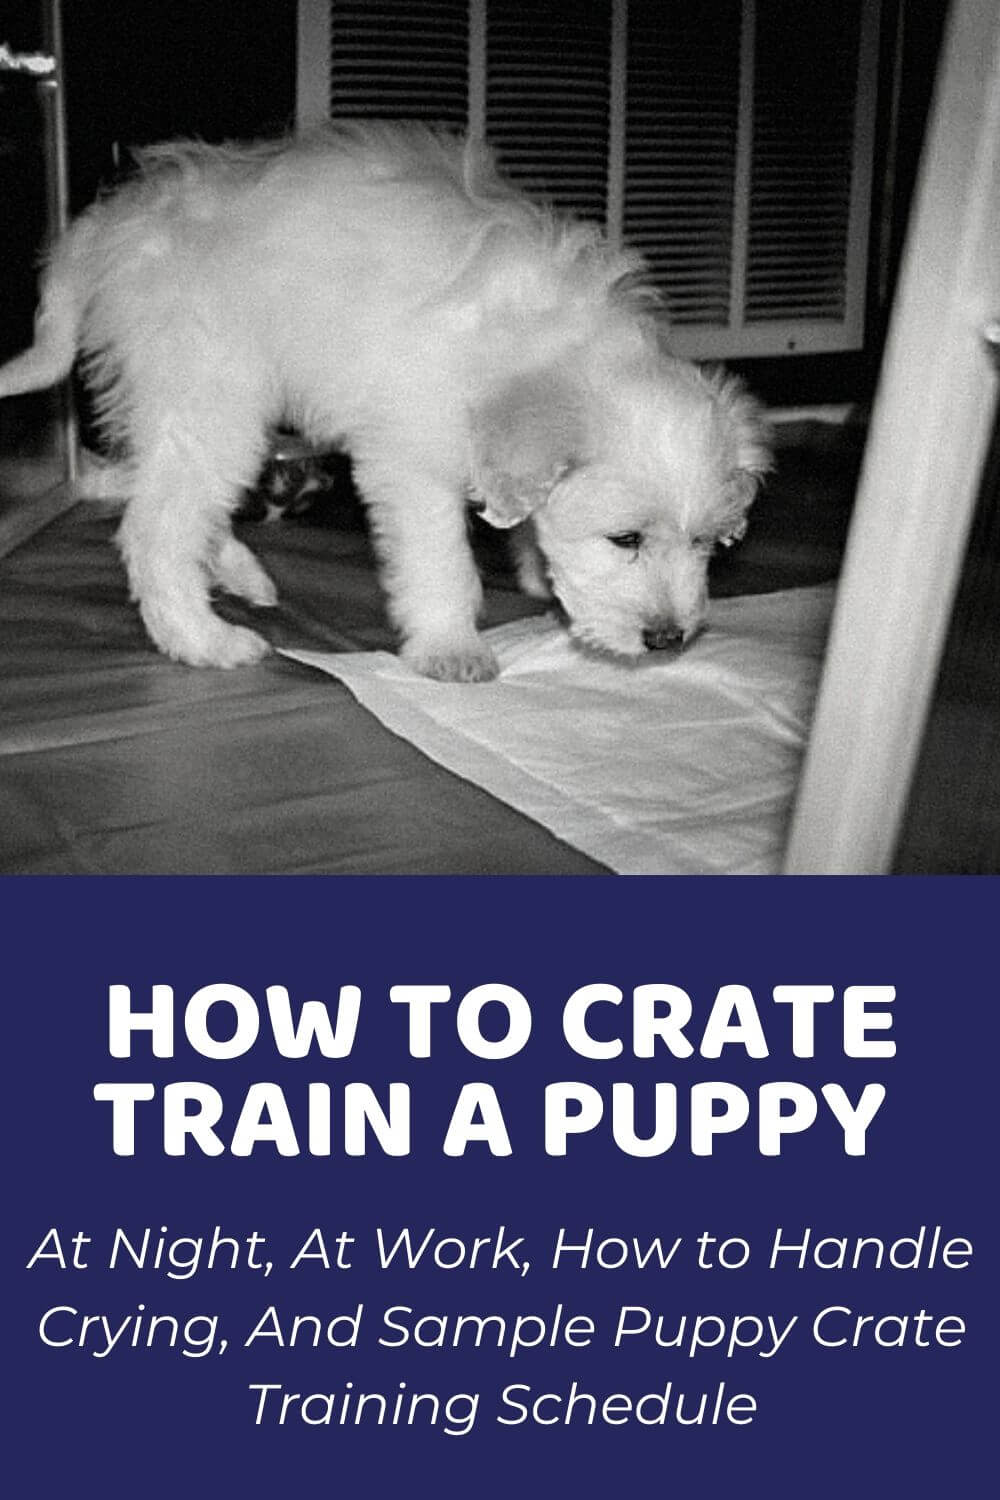 How To Crate Train A Puppy And Puppy Crate Training Schedule